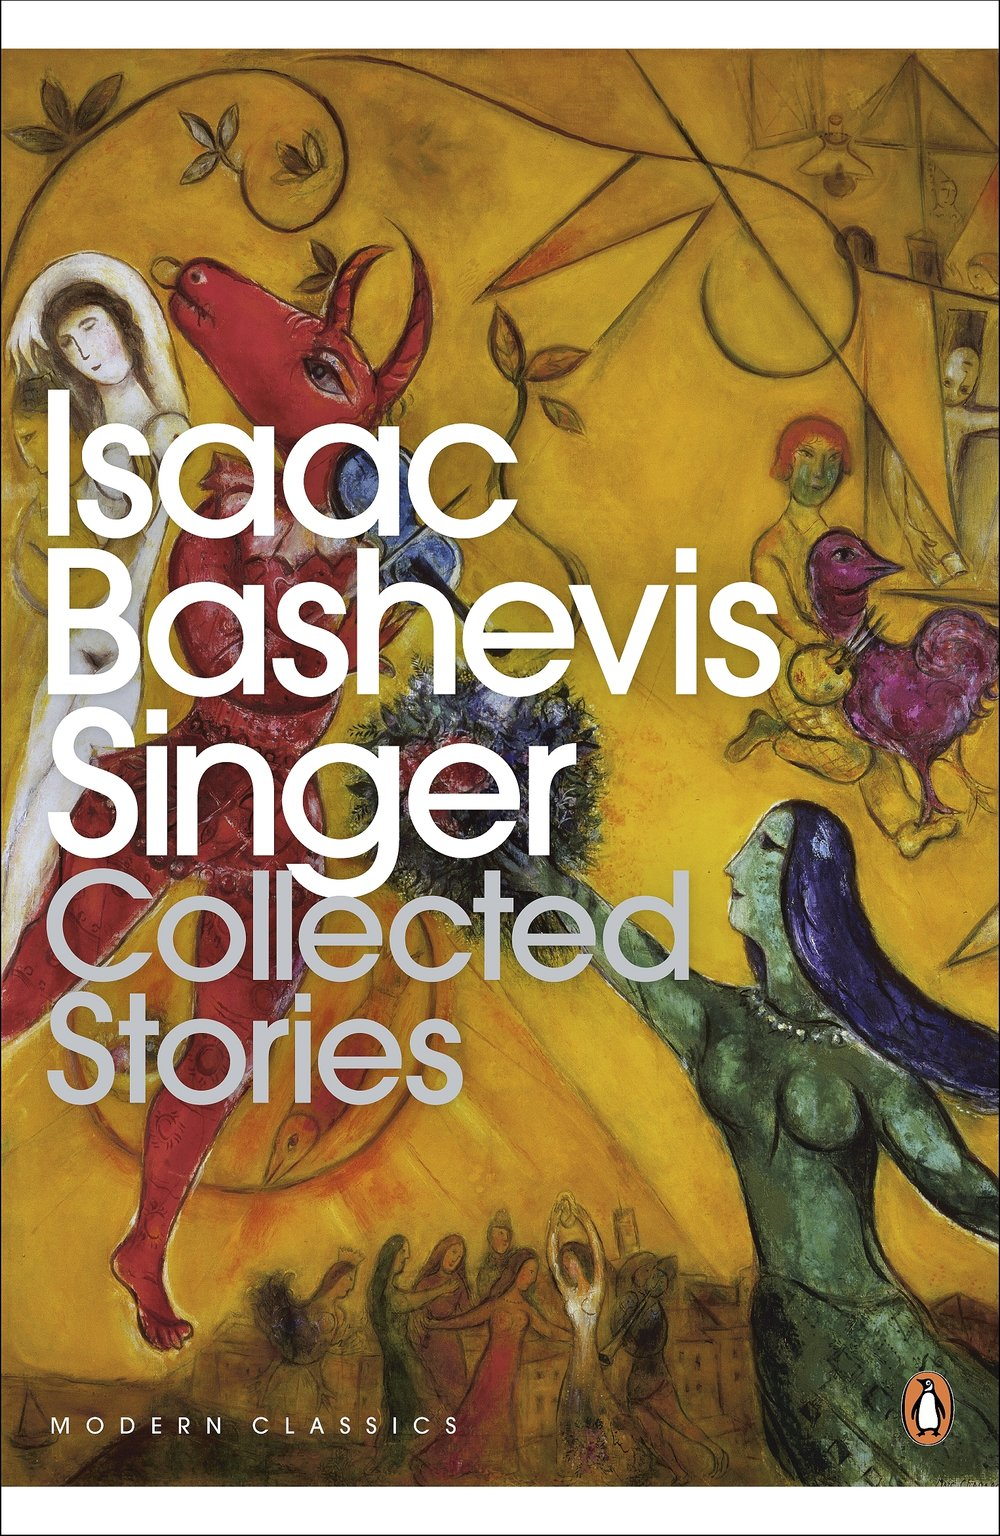 collected-stories-isaac-bashevis-singer.jpg